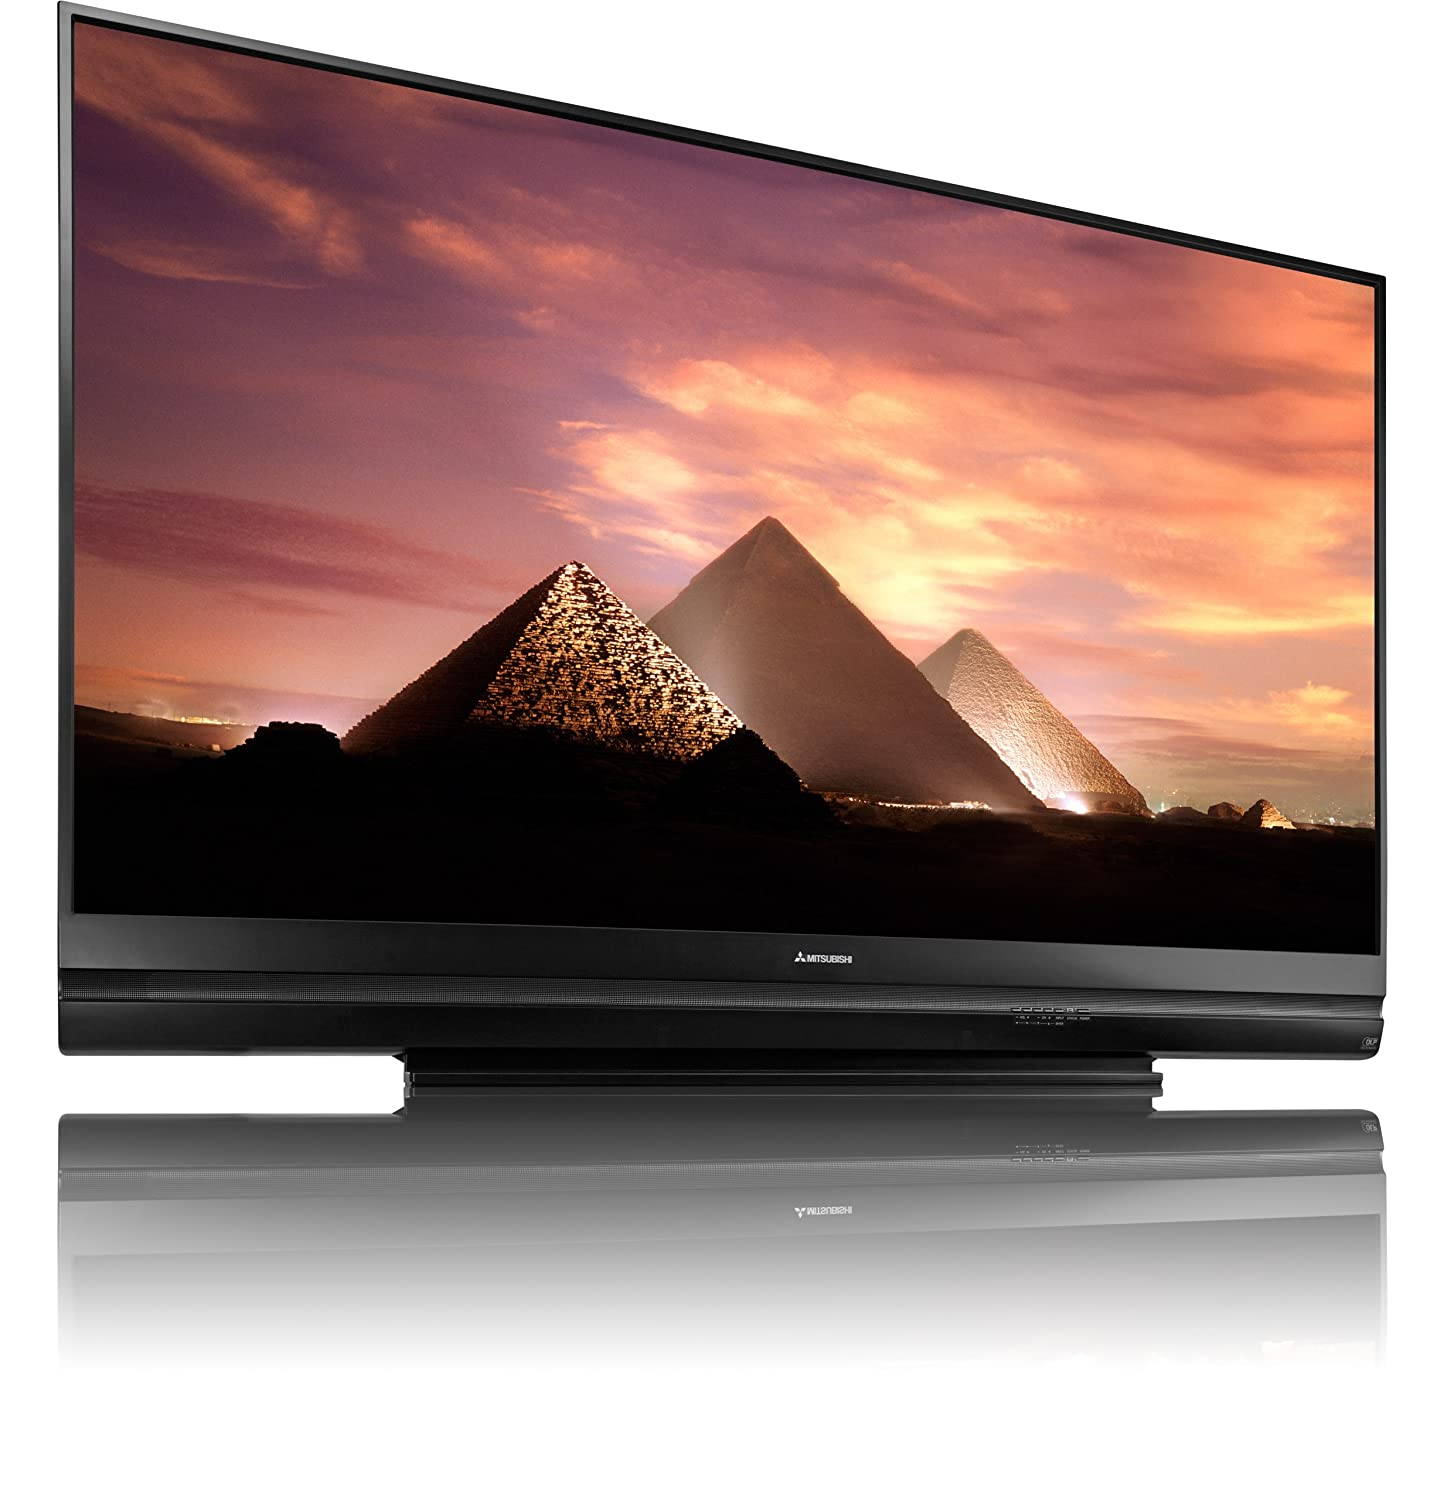 91GLWYTvPzL._SL1500_ amazon com mitsubishi wd73642 73 inch 3d dlp home cinema hdtv  at creativeand.co